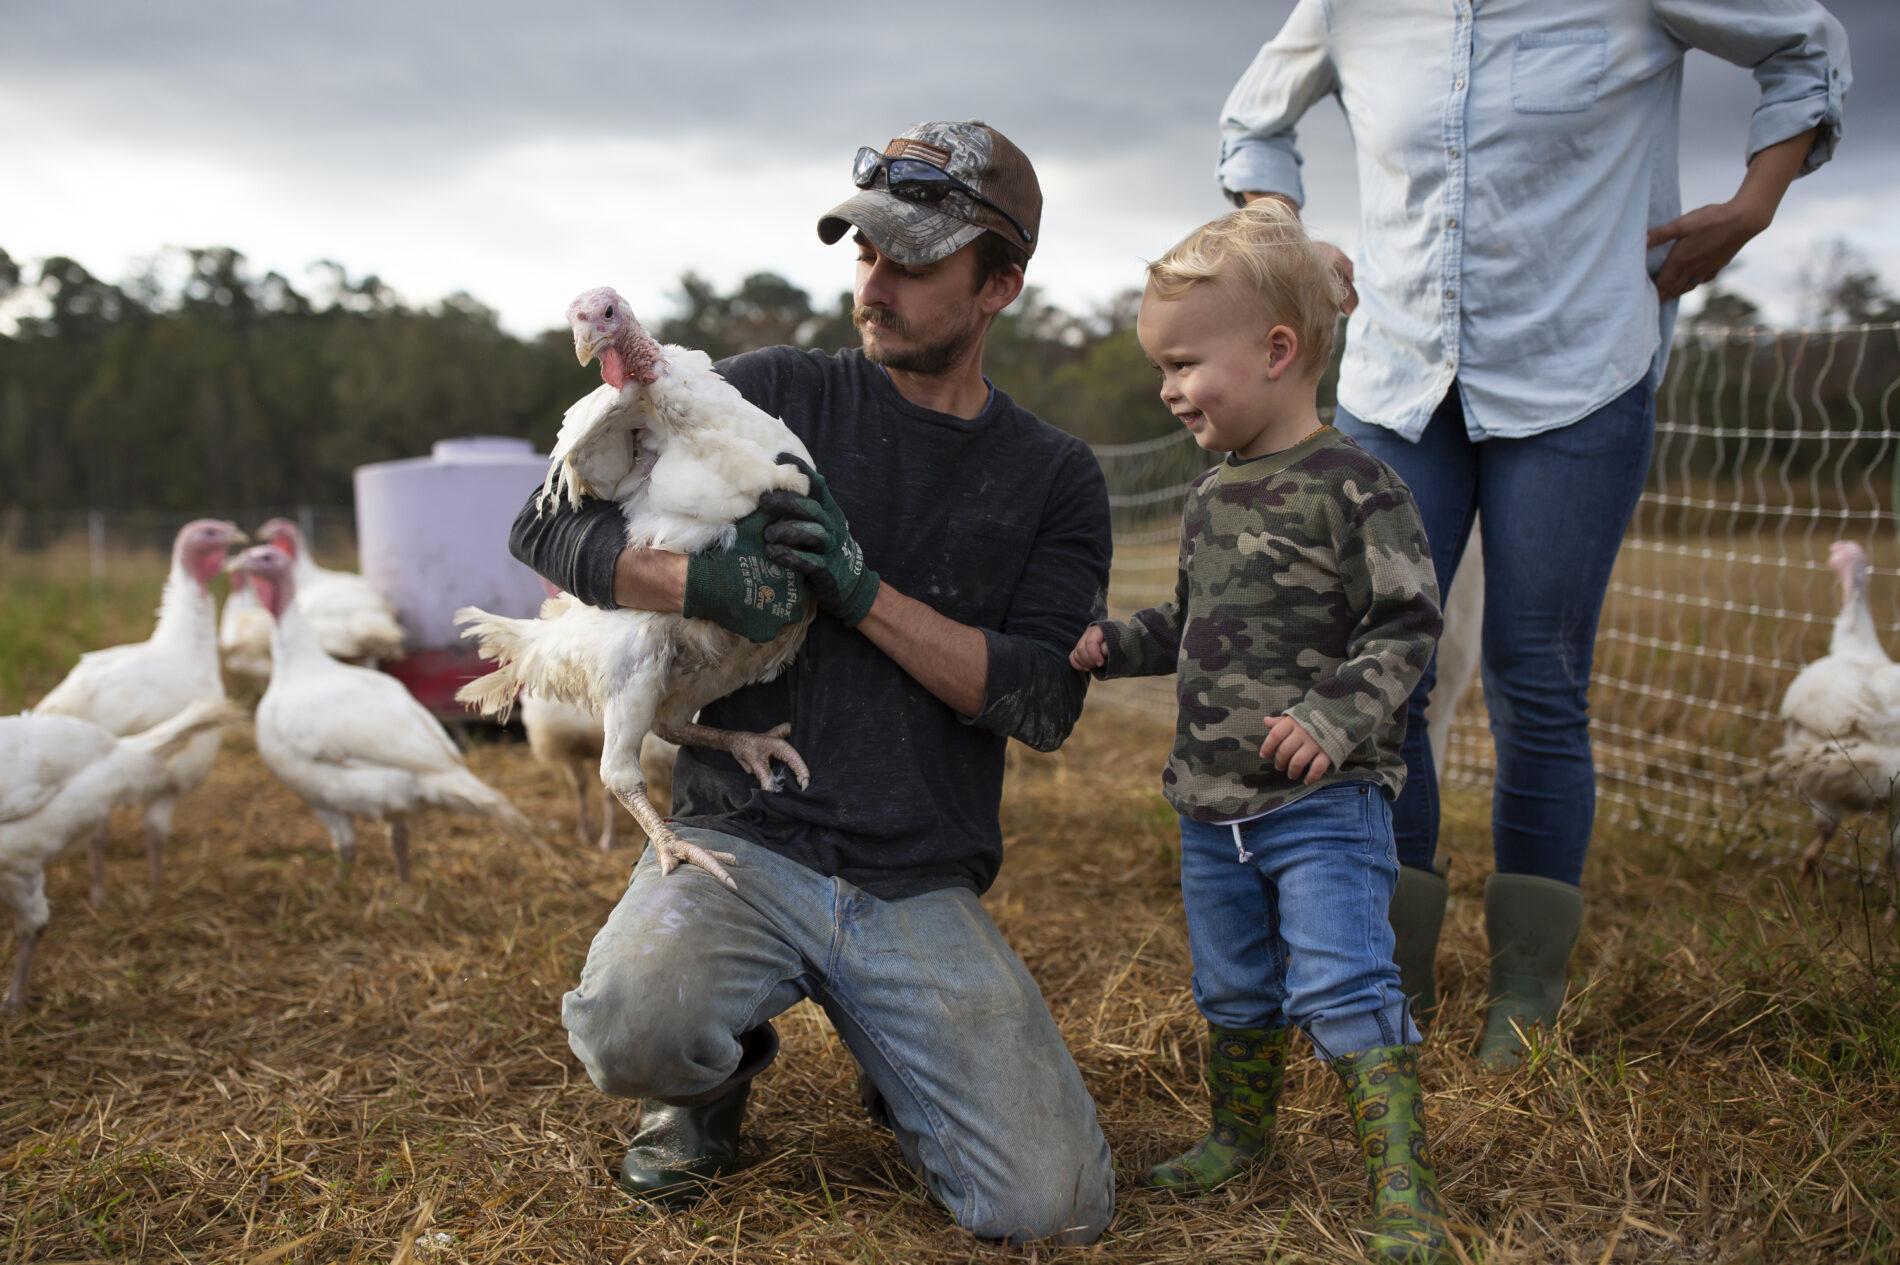 """Joe Shenk holds a turkey for his son, Mason, to pet in the open-air enclosure on their farm. """"They're not very smart, but they make up for that by being really friendly and interesting,"""" Shenk said about the turkeys."""